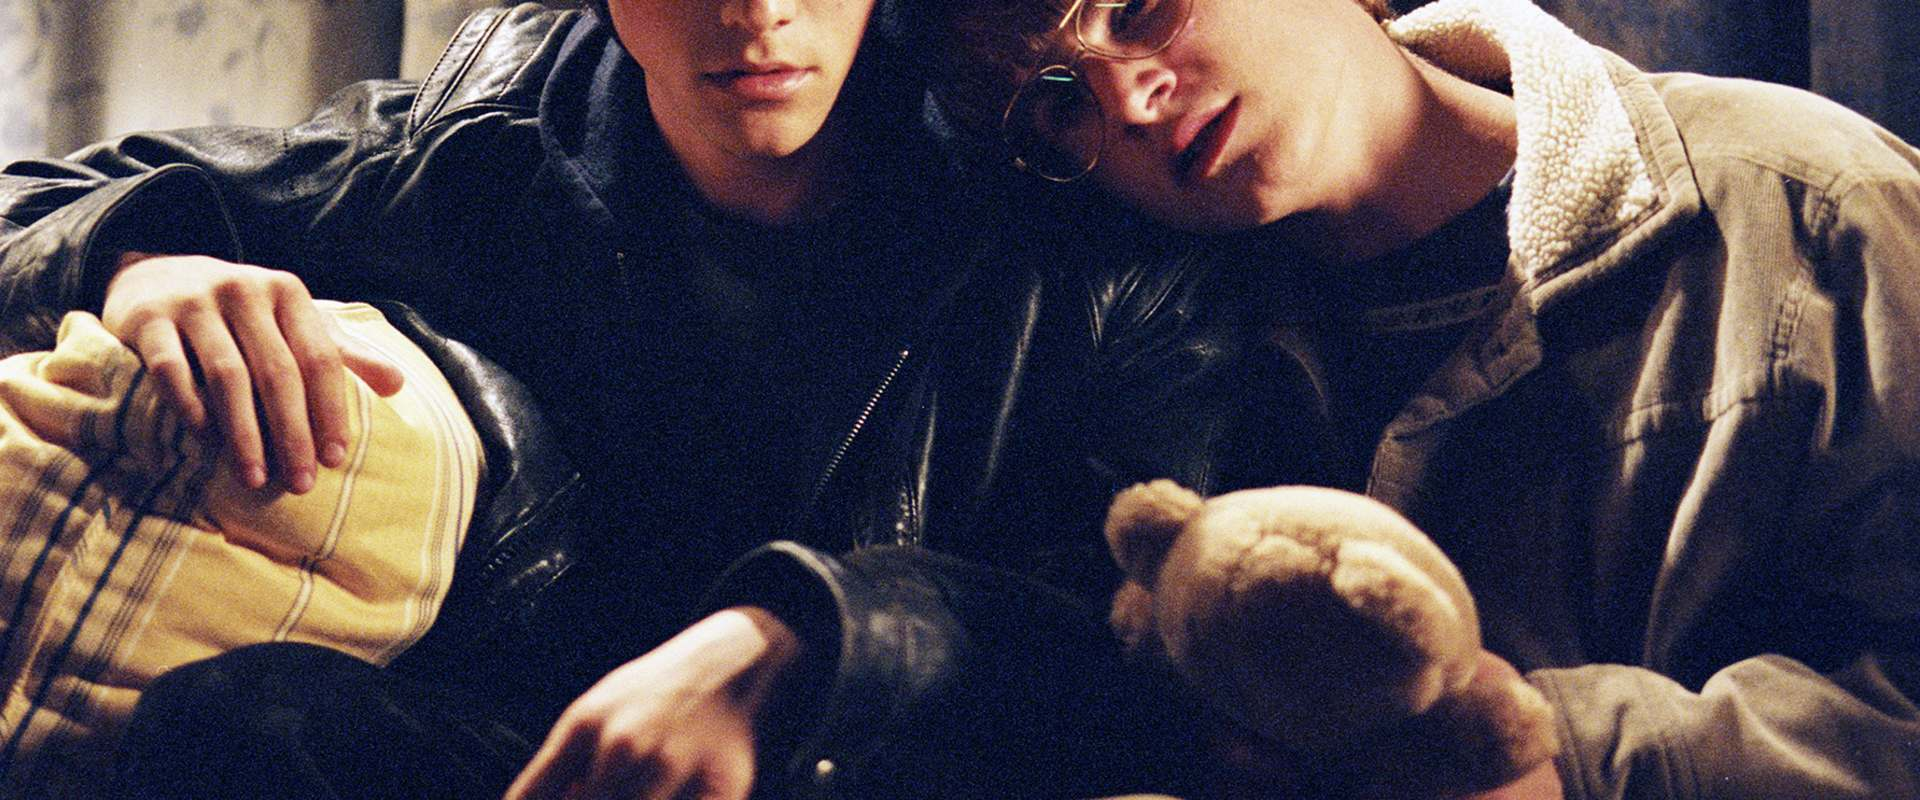 Mysterious Skin background 2